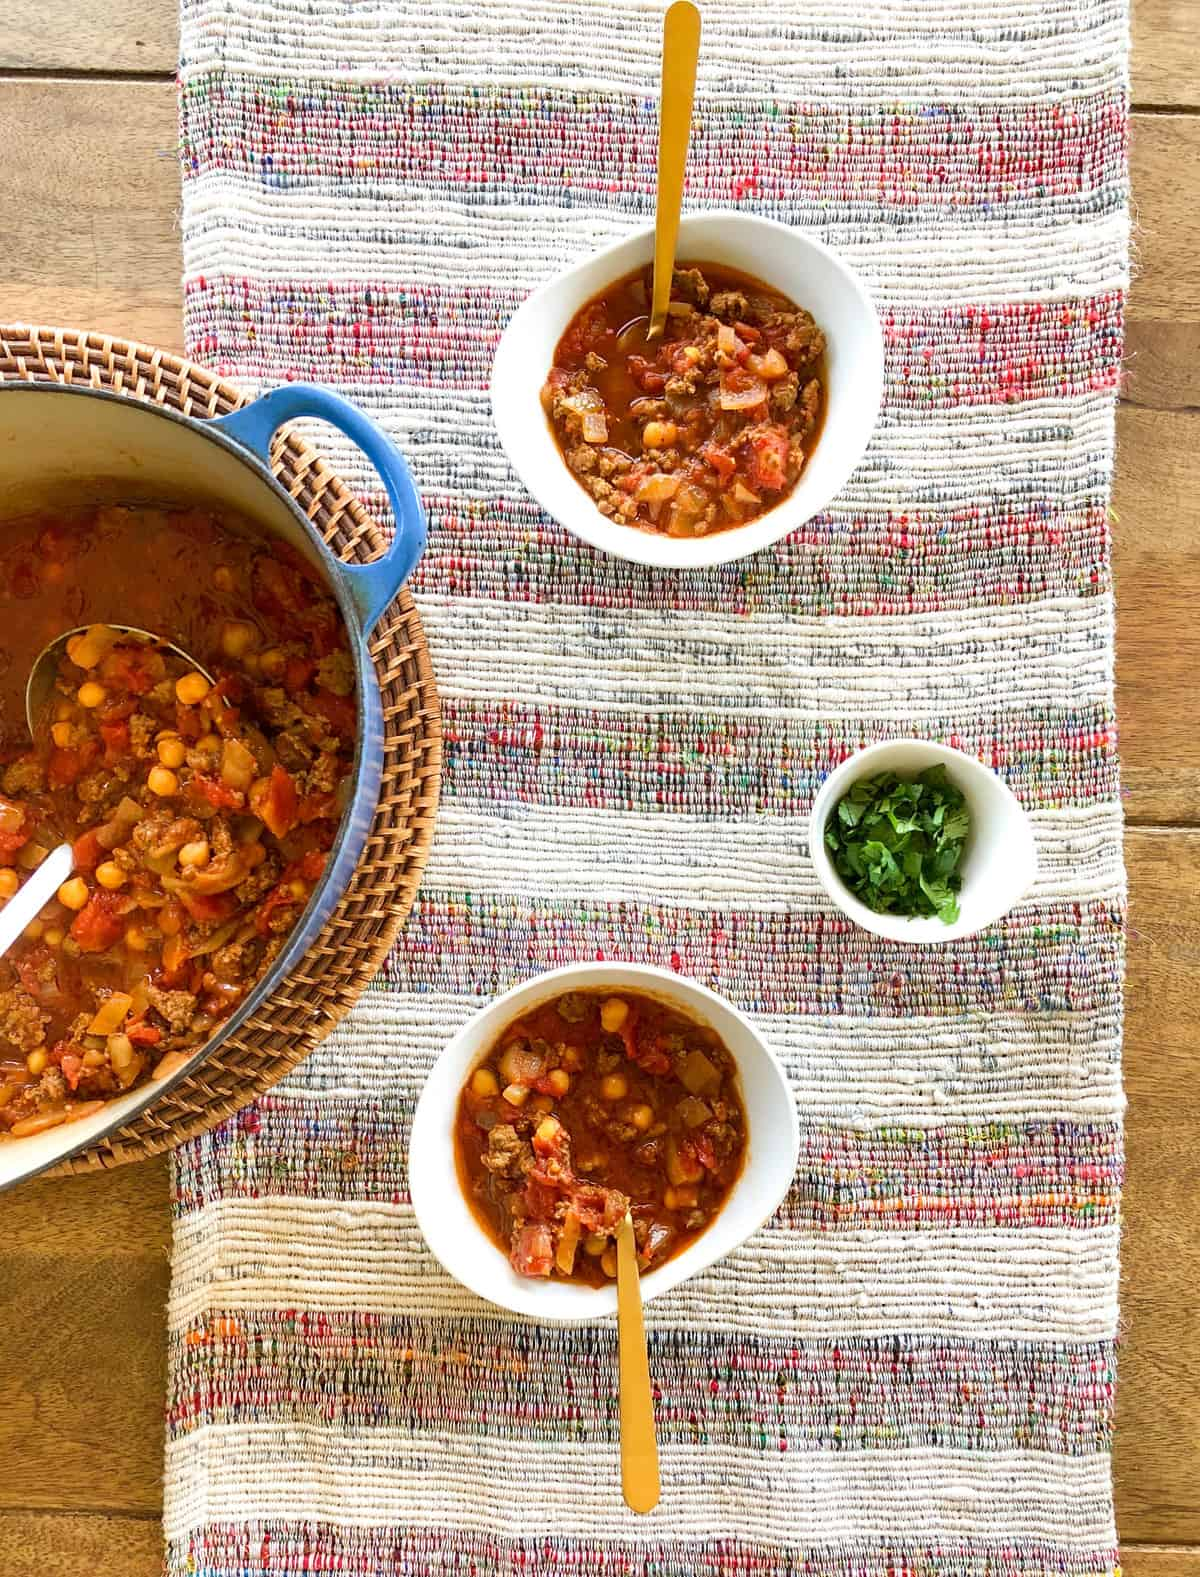 California Lamb Chili